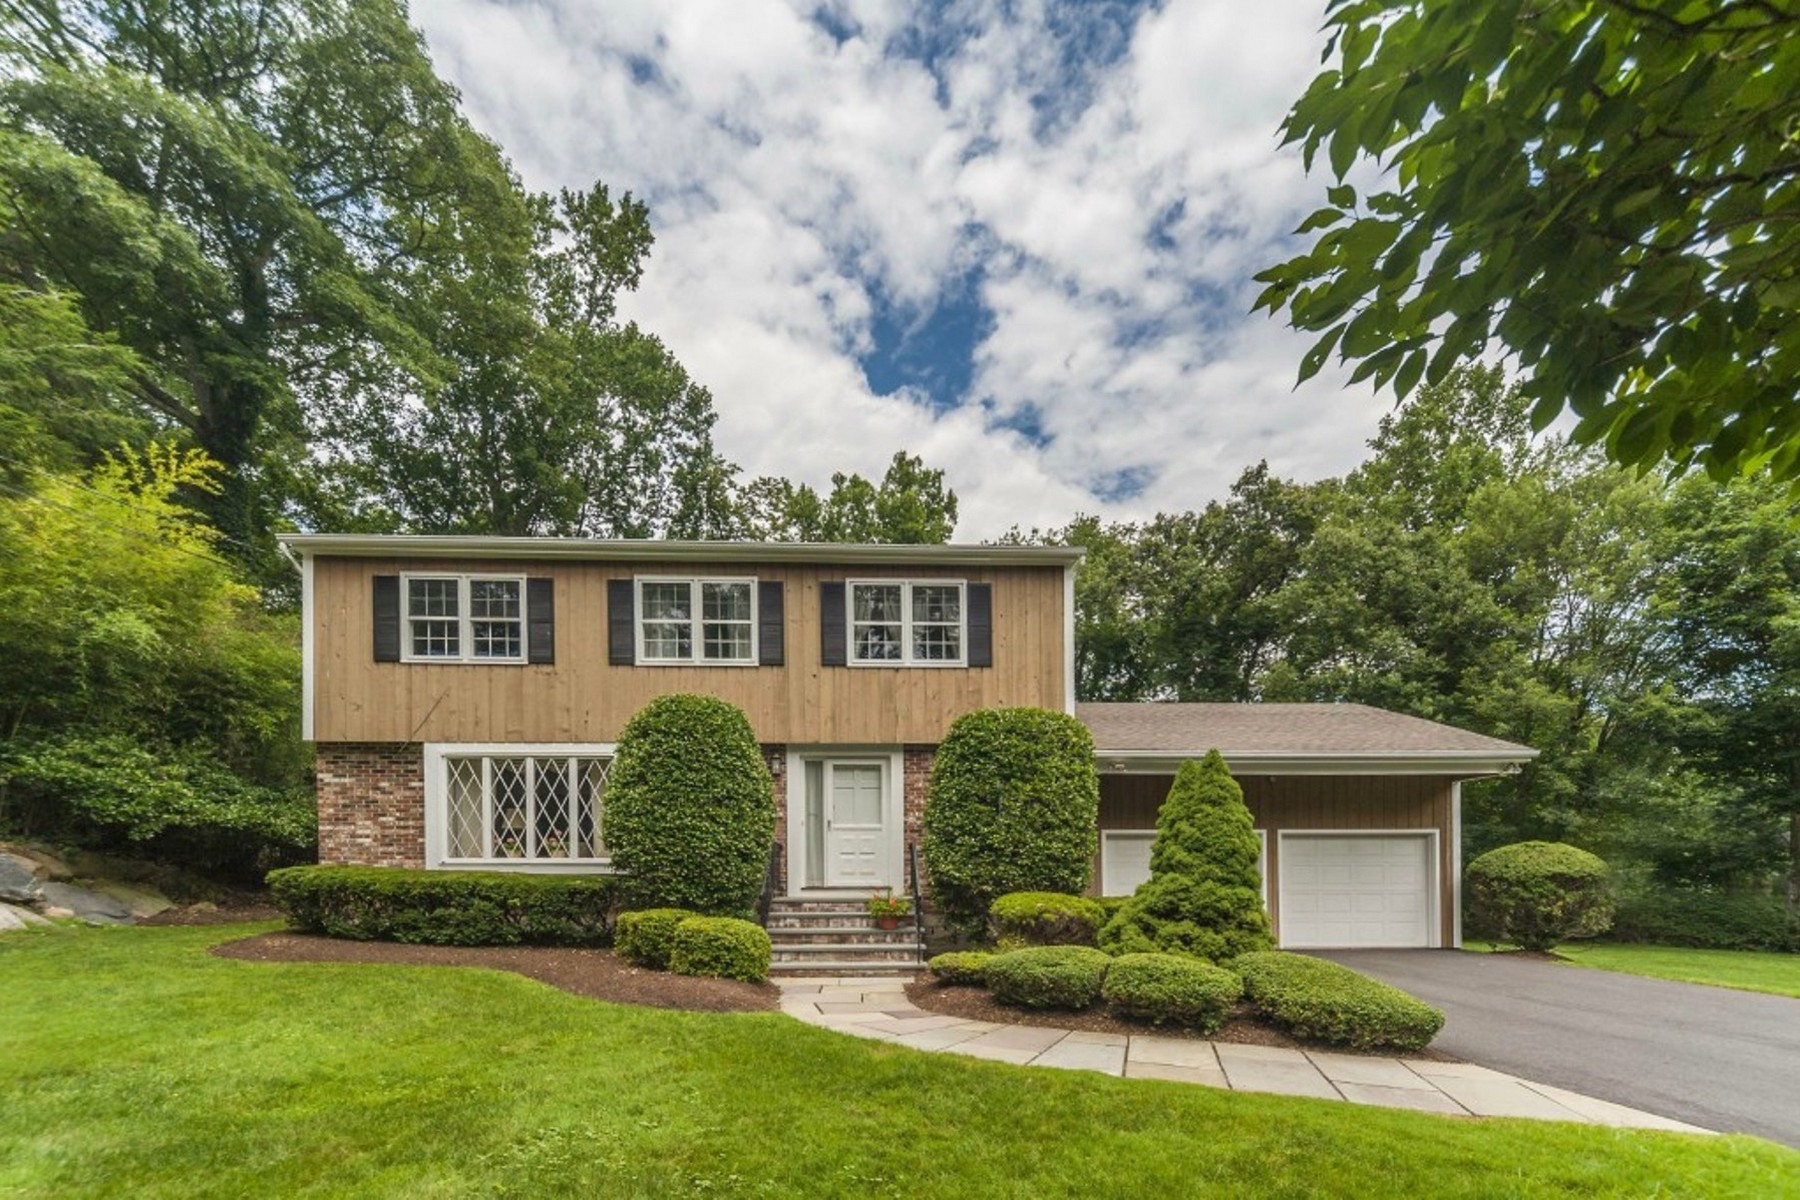 Single Family Home for Sale at A Neighborhood to Treasure 82 Wedgemere Road Stamford, Connecticut, 06905 United States